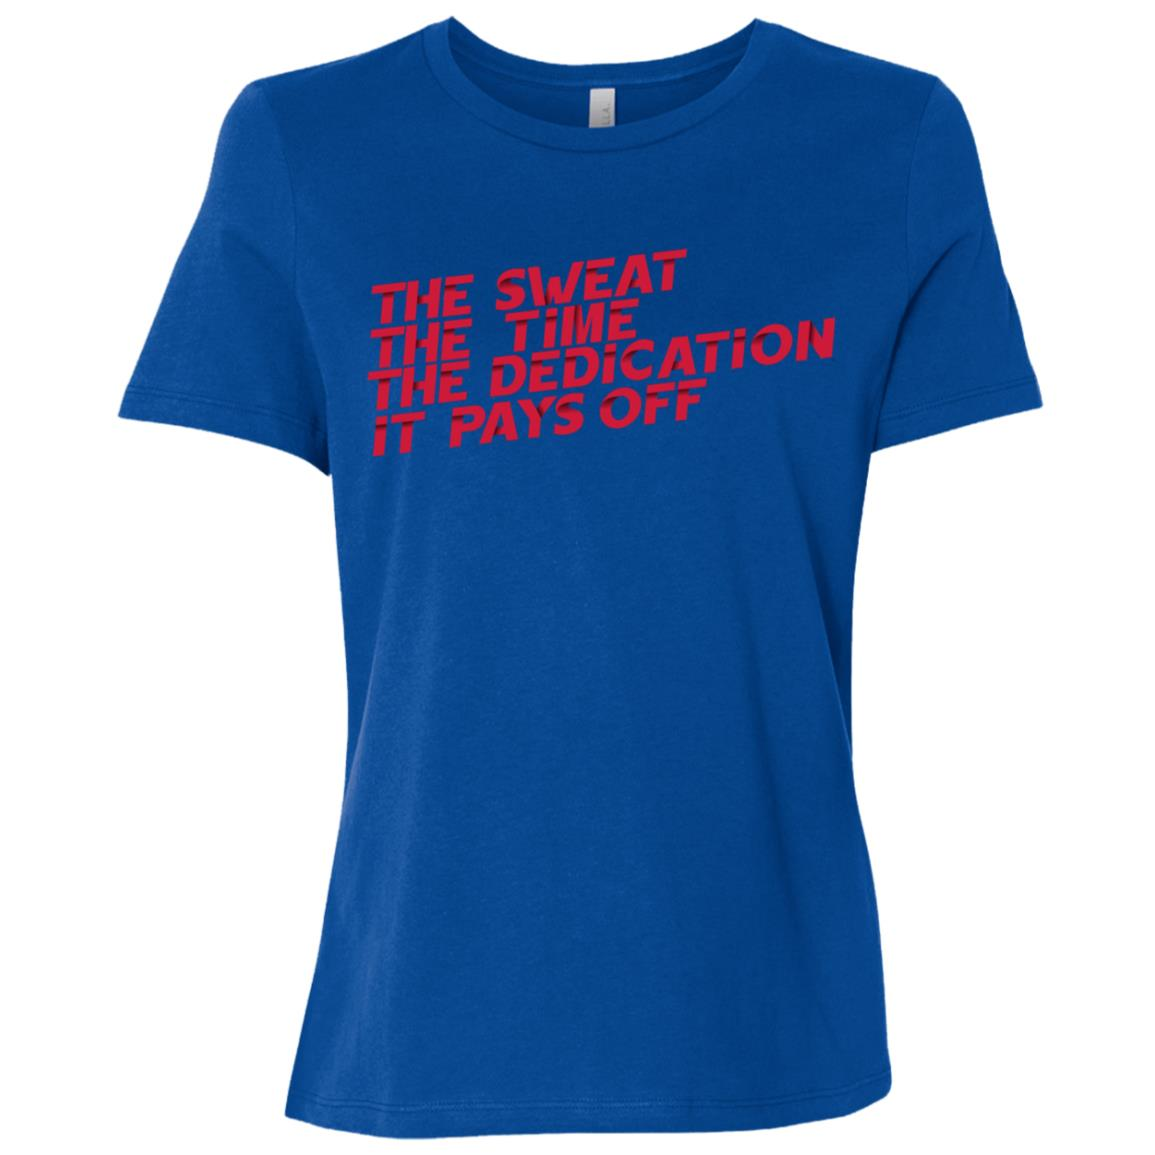 The Sweat The Time The Dedication Women Short Sleeve T-Shirt